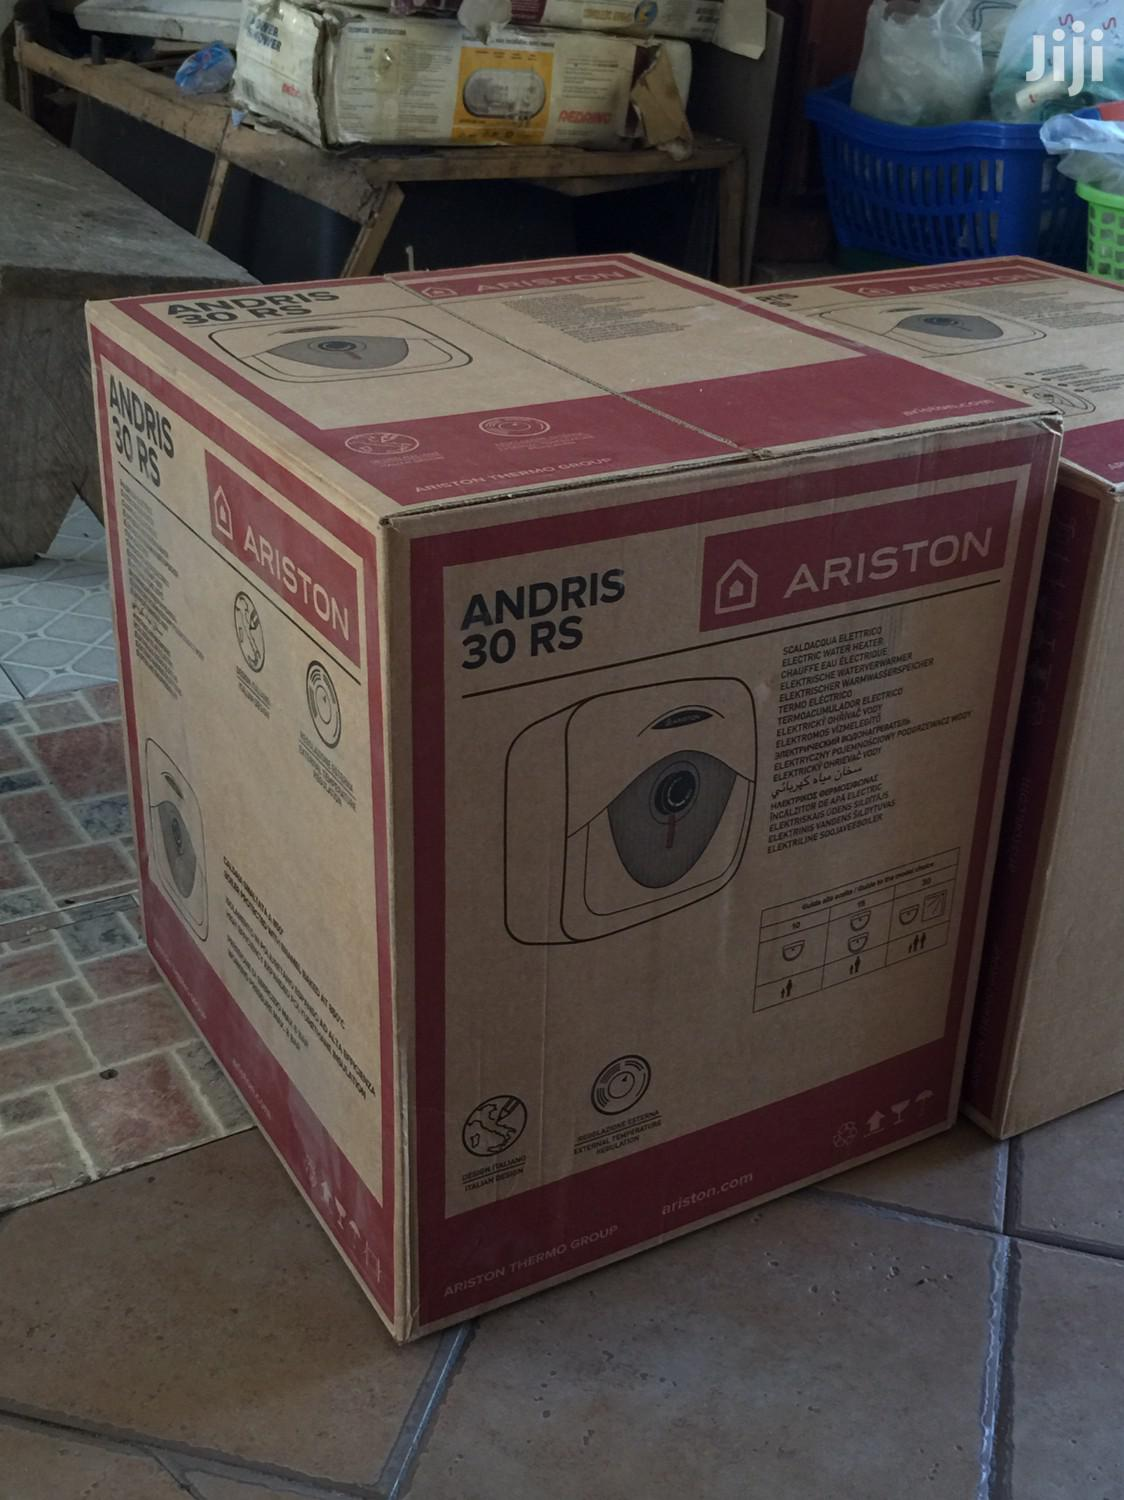 Water Heater Instant Water Heater Ariston Water Heater | Home Appliances for sale in Accra Metropolitan, Greater Accra, Ghana